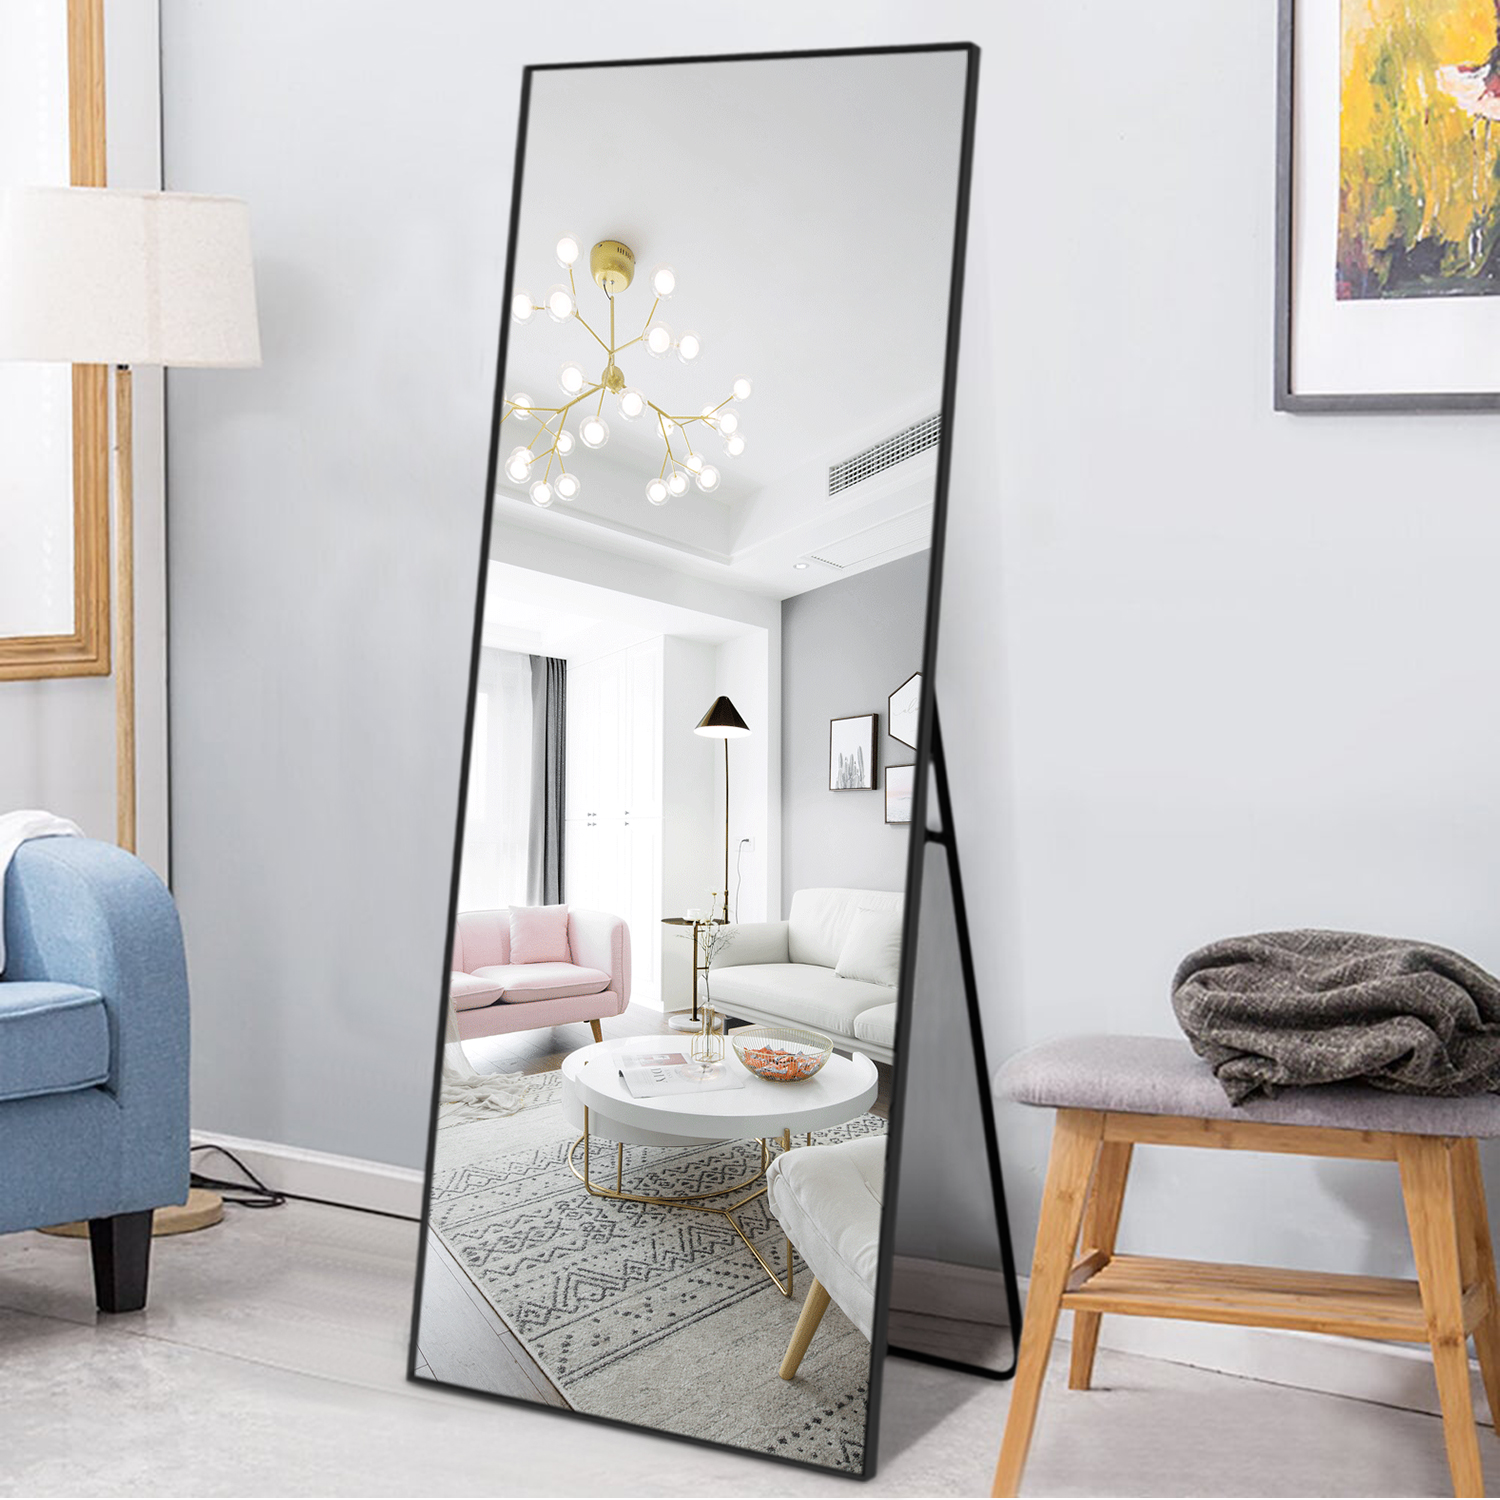 Neutype Full Length Mirror Floor Mirror With Standing Holder Hanging Leaning Large Wall Mounted Mirror Horizontal Vertical Bedroom Mirror Dressing Mirror Aluminum Alloy Thin Frame Black 59 X 20 Walmart Canada